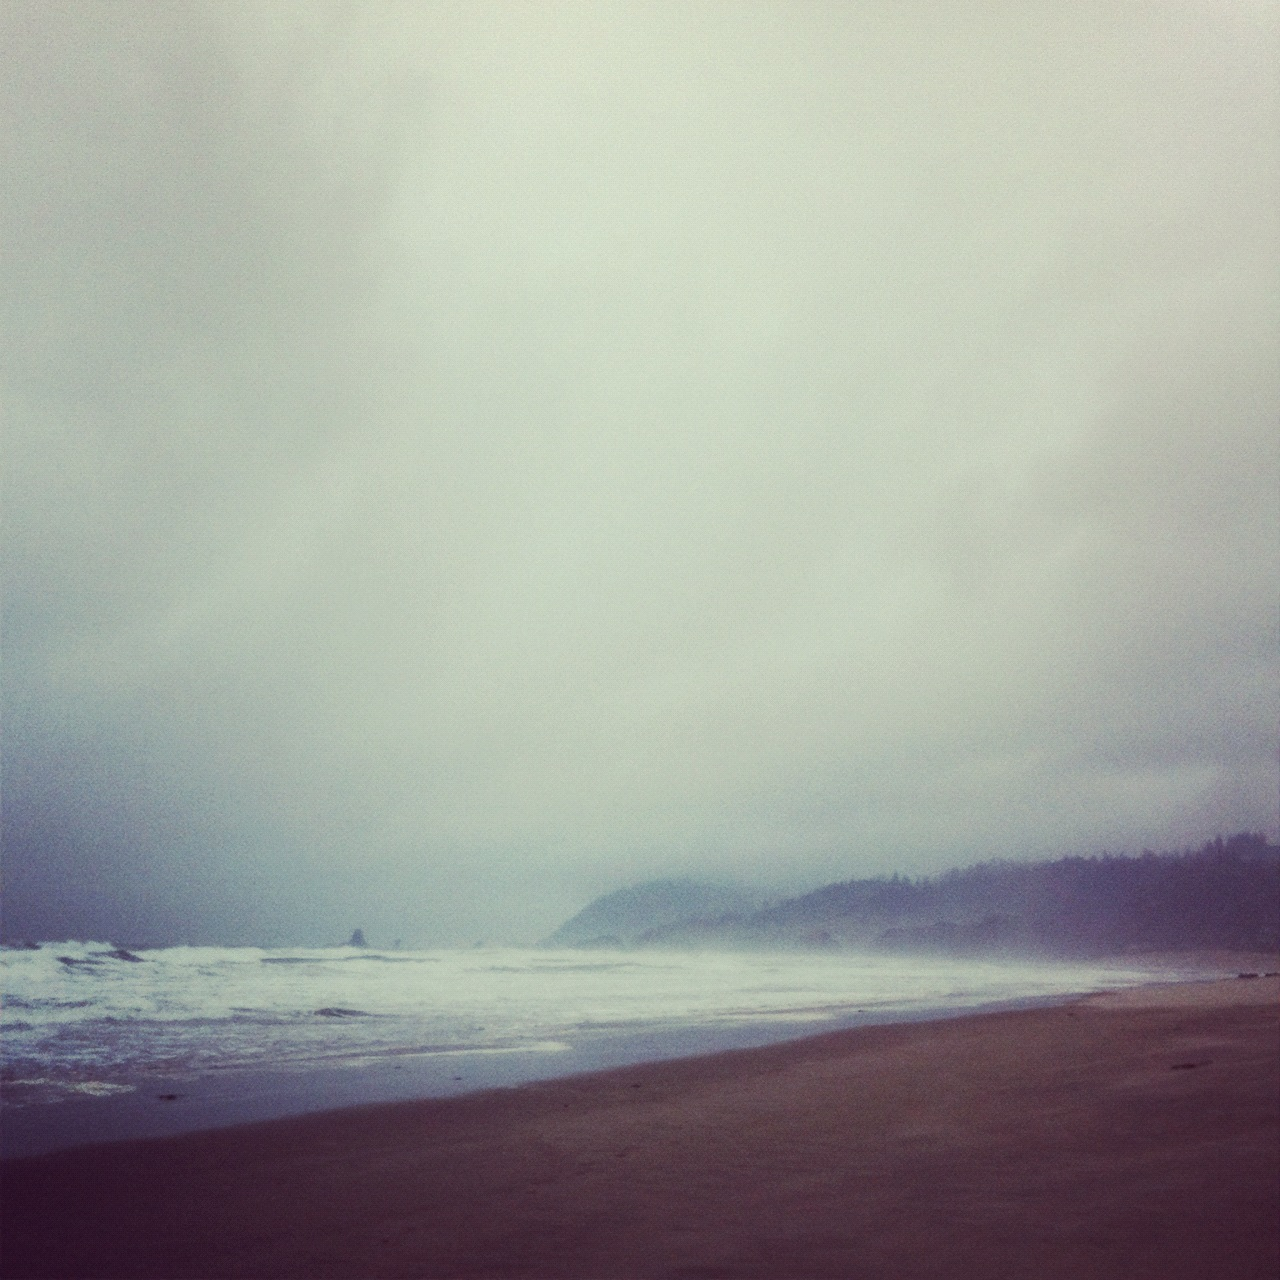 misty_oregon_coast